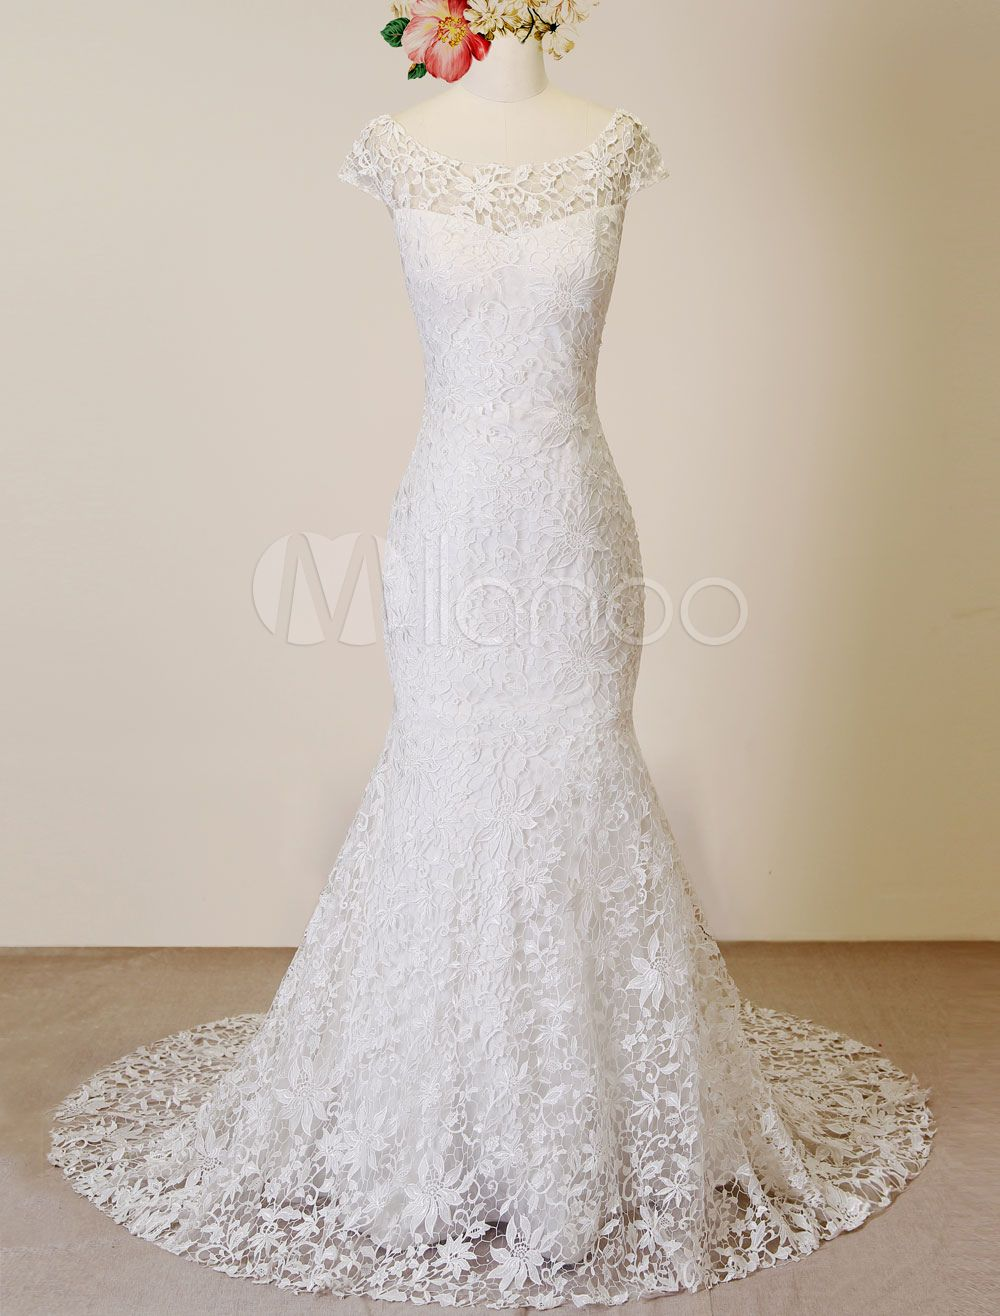 Cut out lace wedding dress  Mermaid Wedding Dress Scoop Lace Cut Out Court Train Bridal Dress